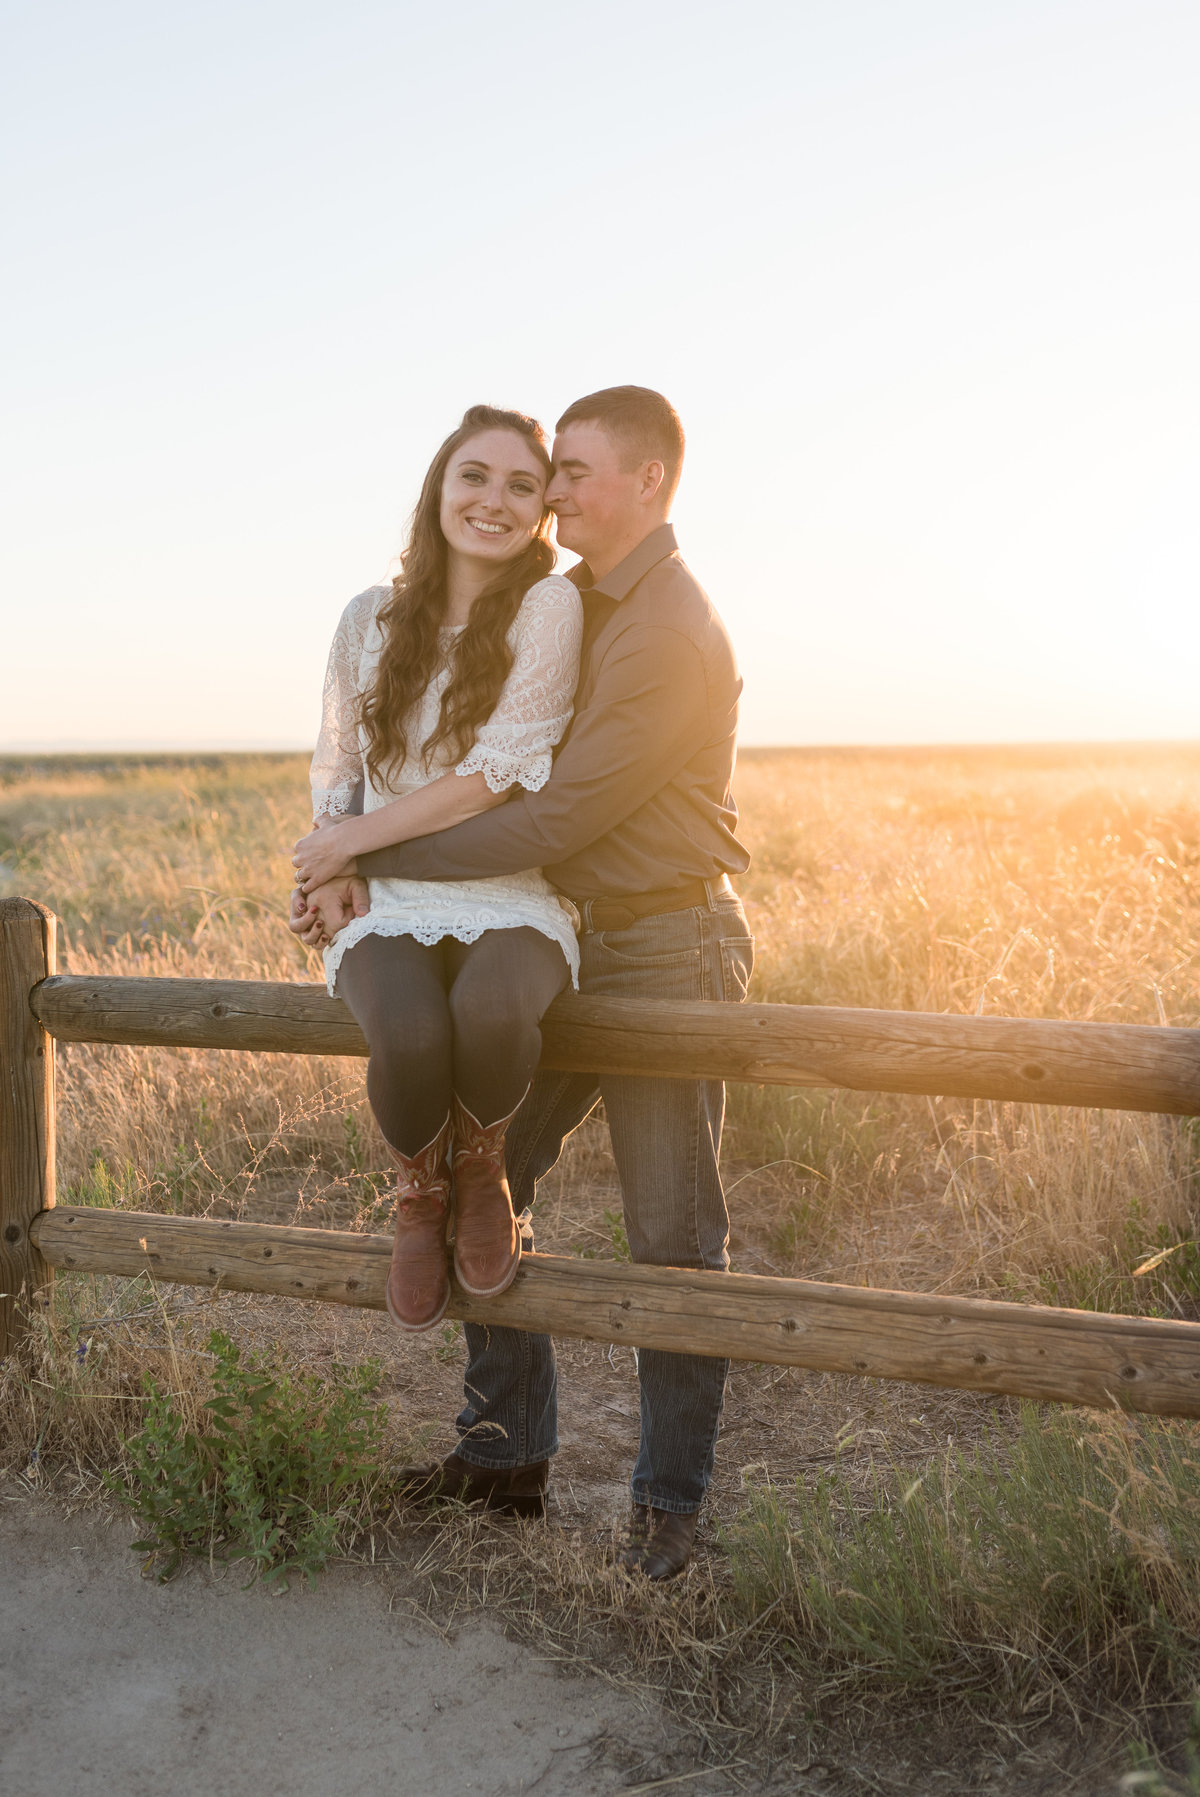 Spring Boise Foothills Engagement Shoot12